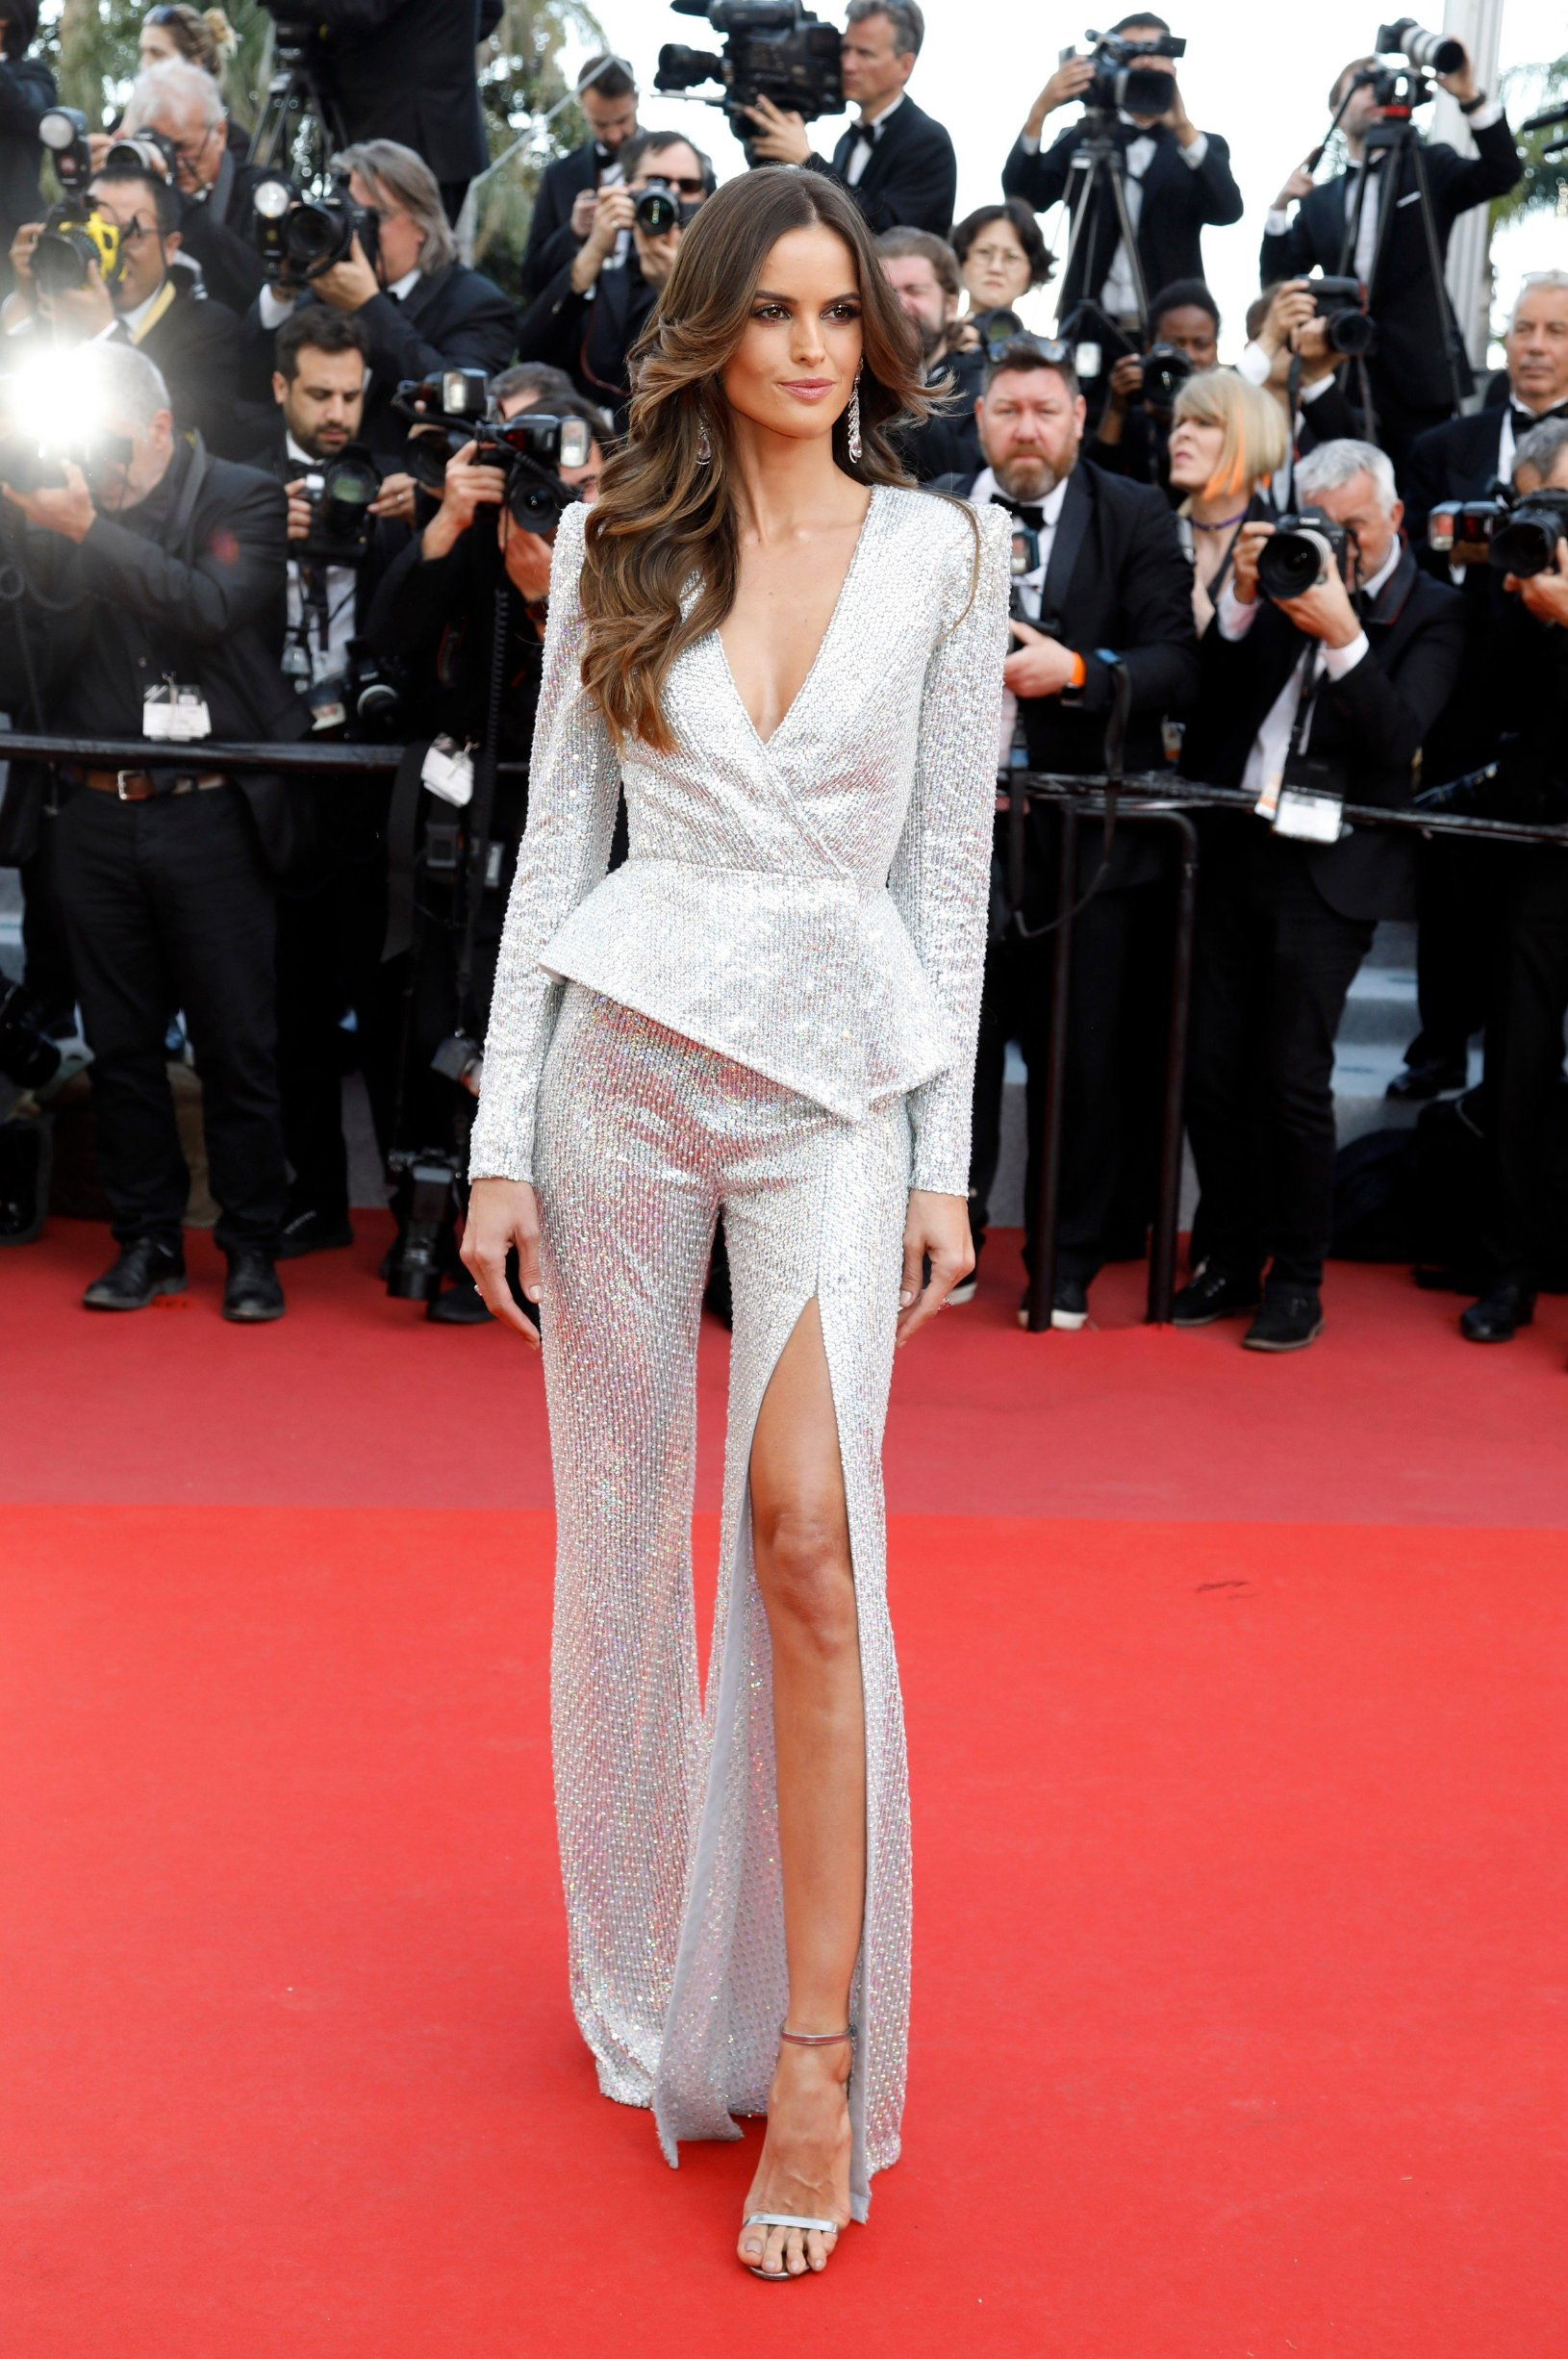 May 16, 2019 - Cannes, Alpes-Maritimes, Frankreich - Izabel Goulart attending the 'Rocketman' premiere during the 72nd Cannes Film Festival at the Palais des Festivals on May15, 2019 in Cannes, France, Image: 433855432, License: Rights-managed, Restrictions: , Model Release: no, Credit line: Profimedia, Zuma Press - Entertaiment